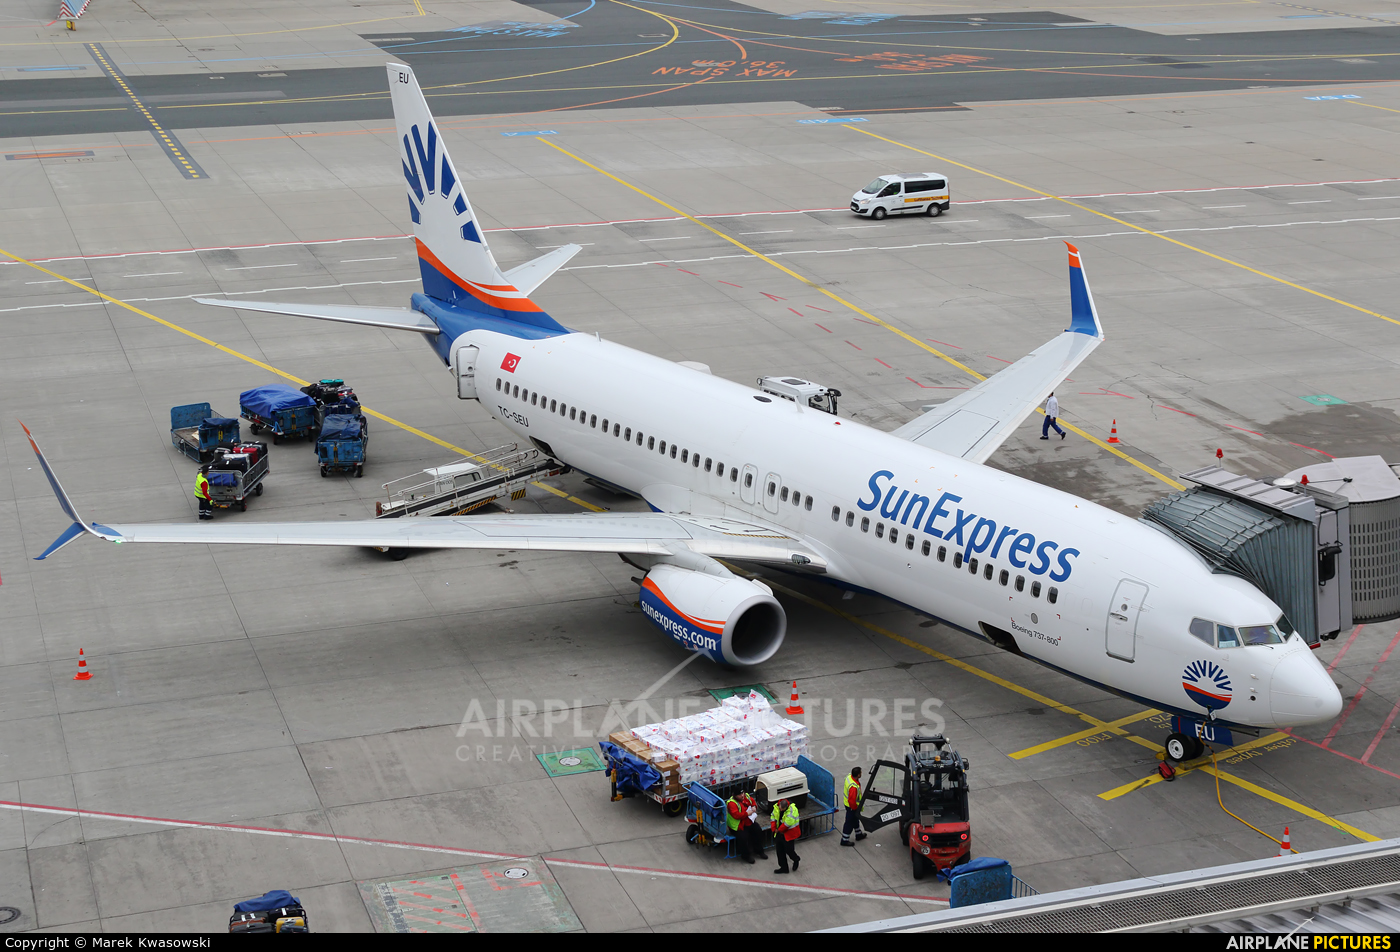 SunExpress TC-SEU aircraft at Frankfurt